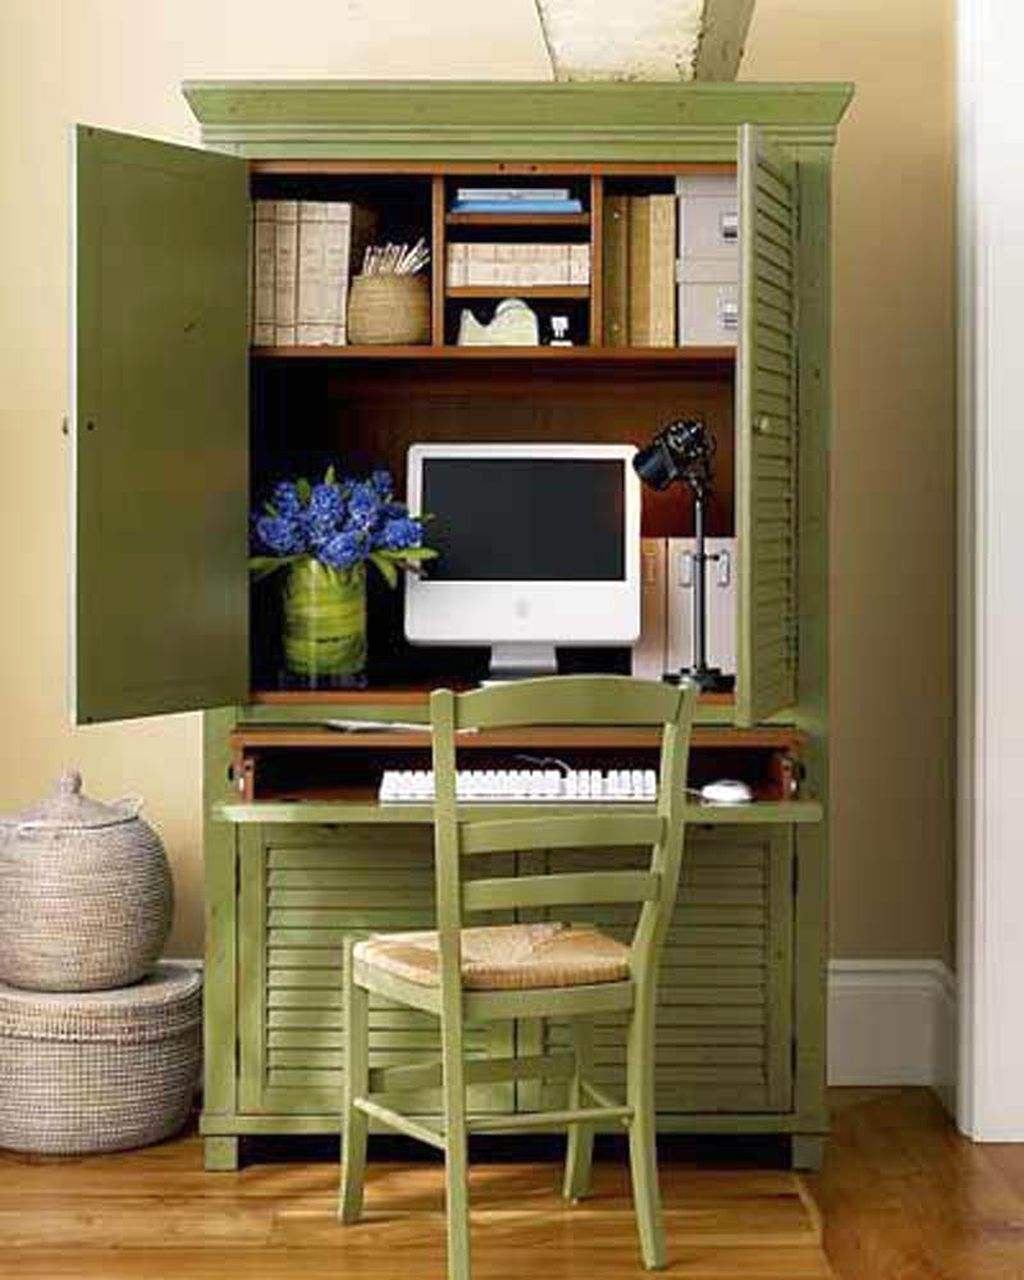 Green cupboard home office design ideas for small spaces - Home office living room ideas ...